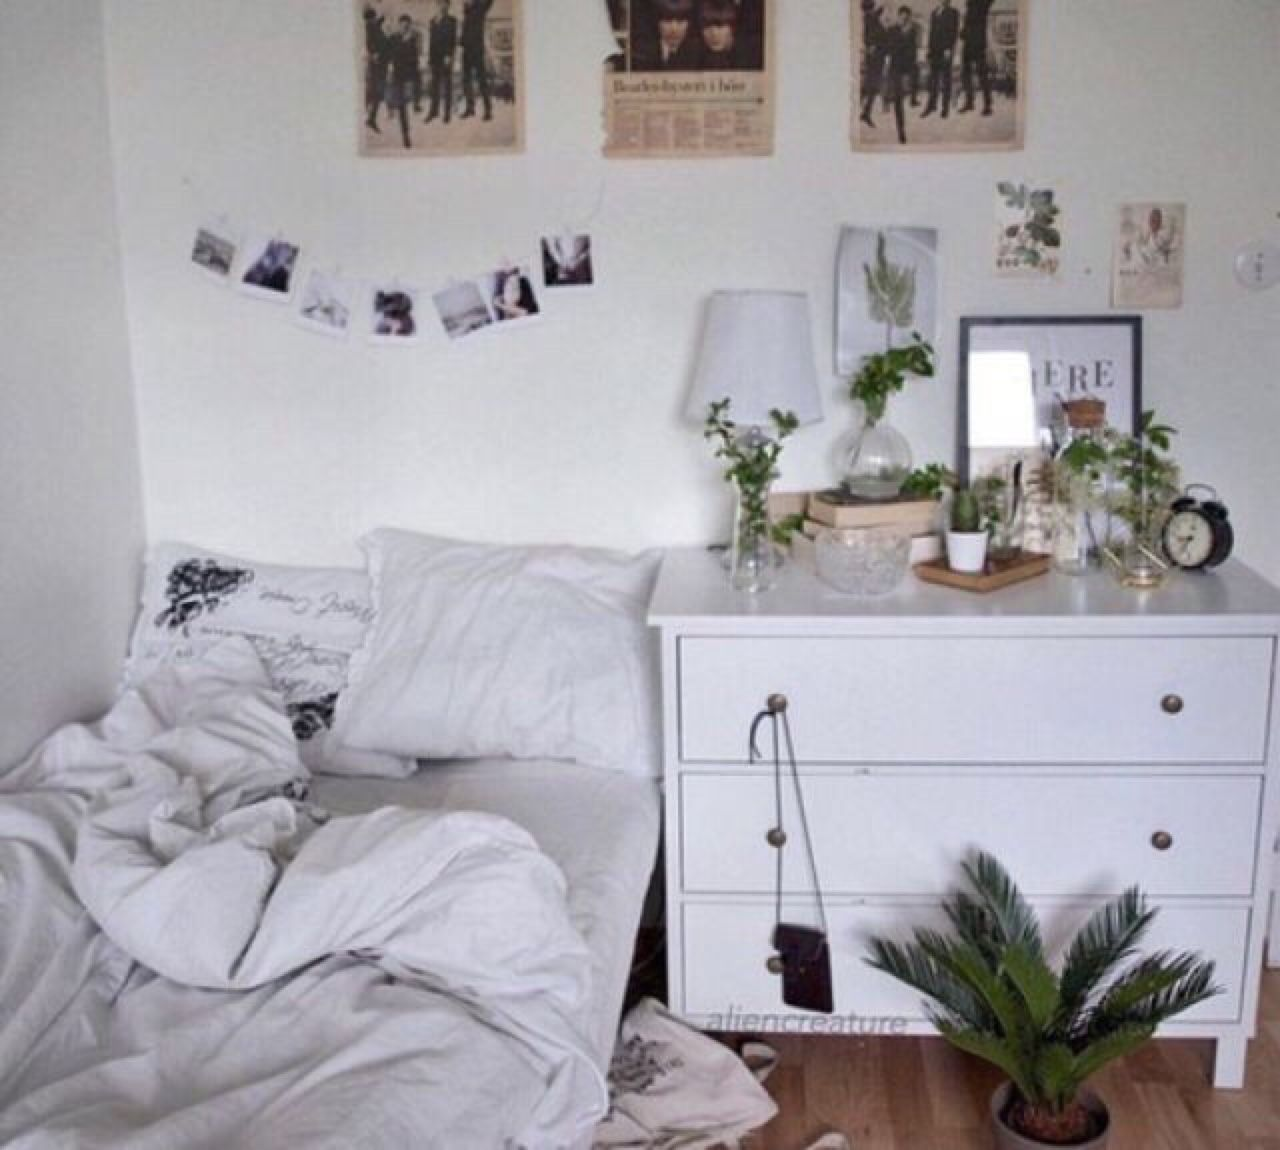 Aesthetic tumblr grunge room google search room for Bedroom ideas aesthetic